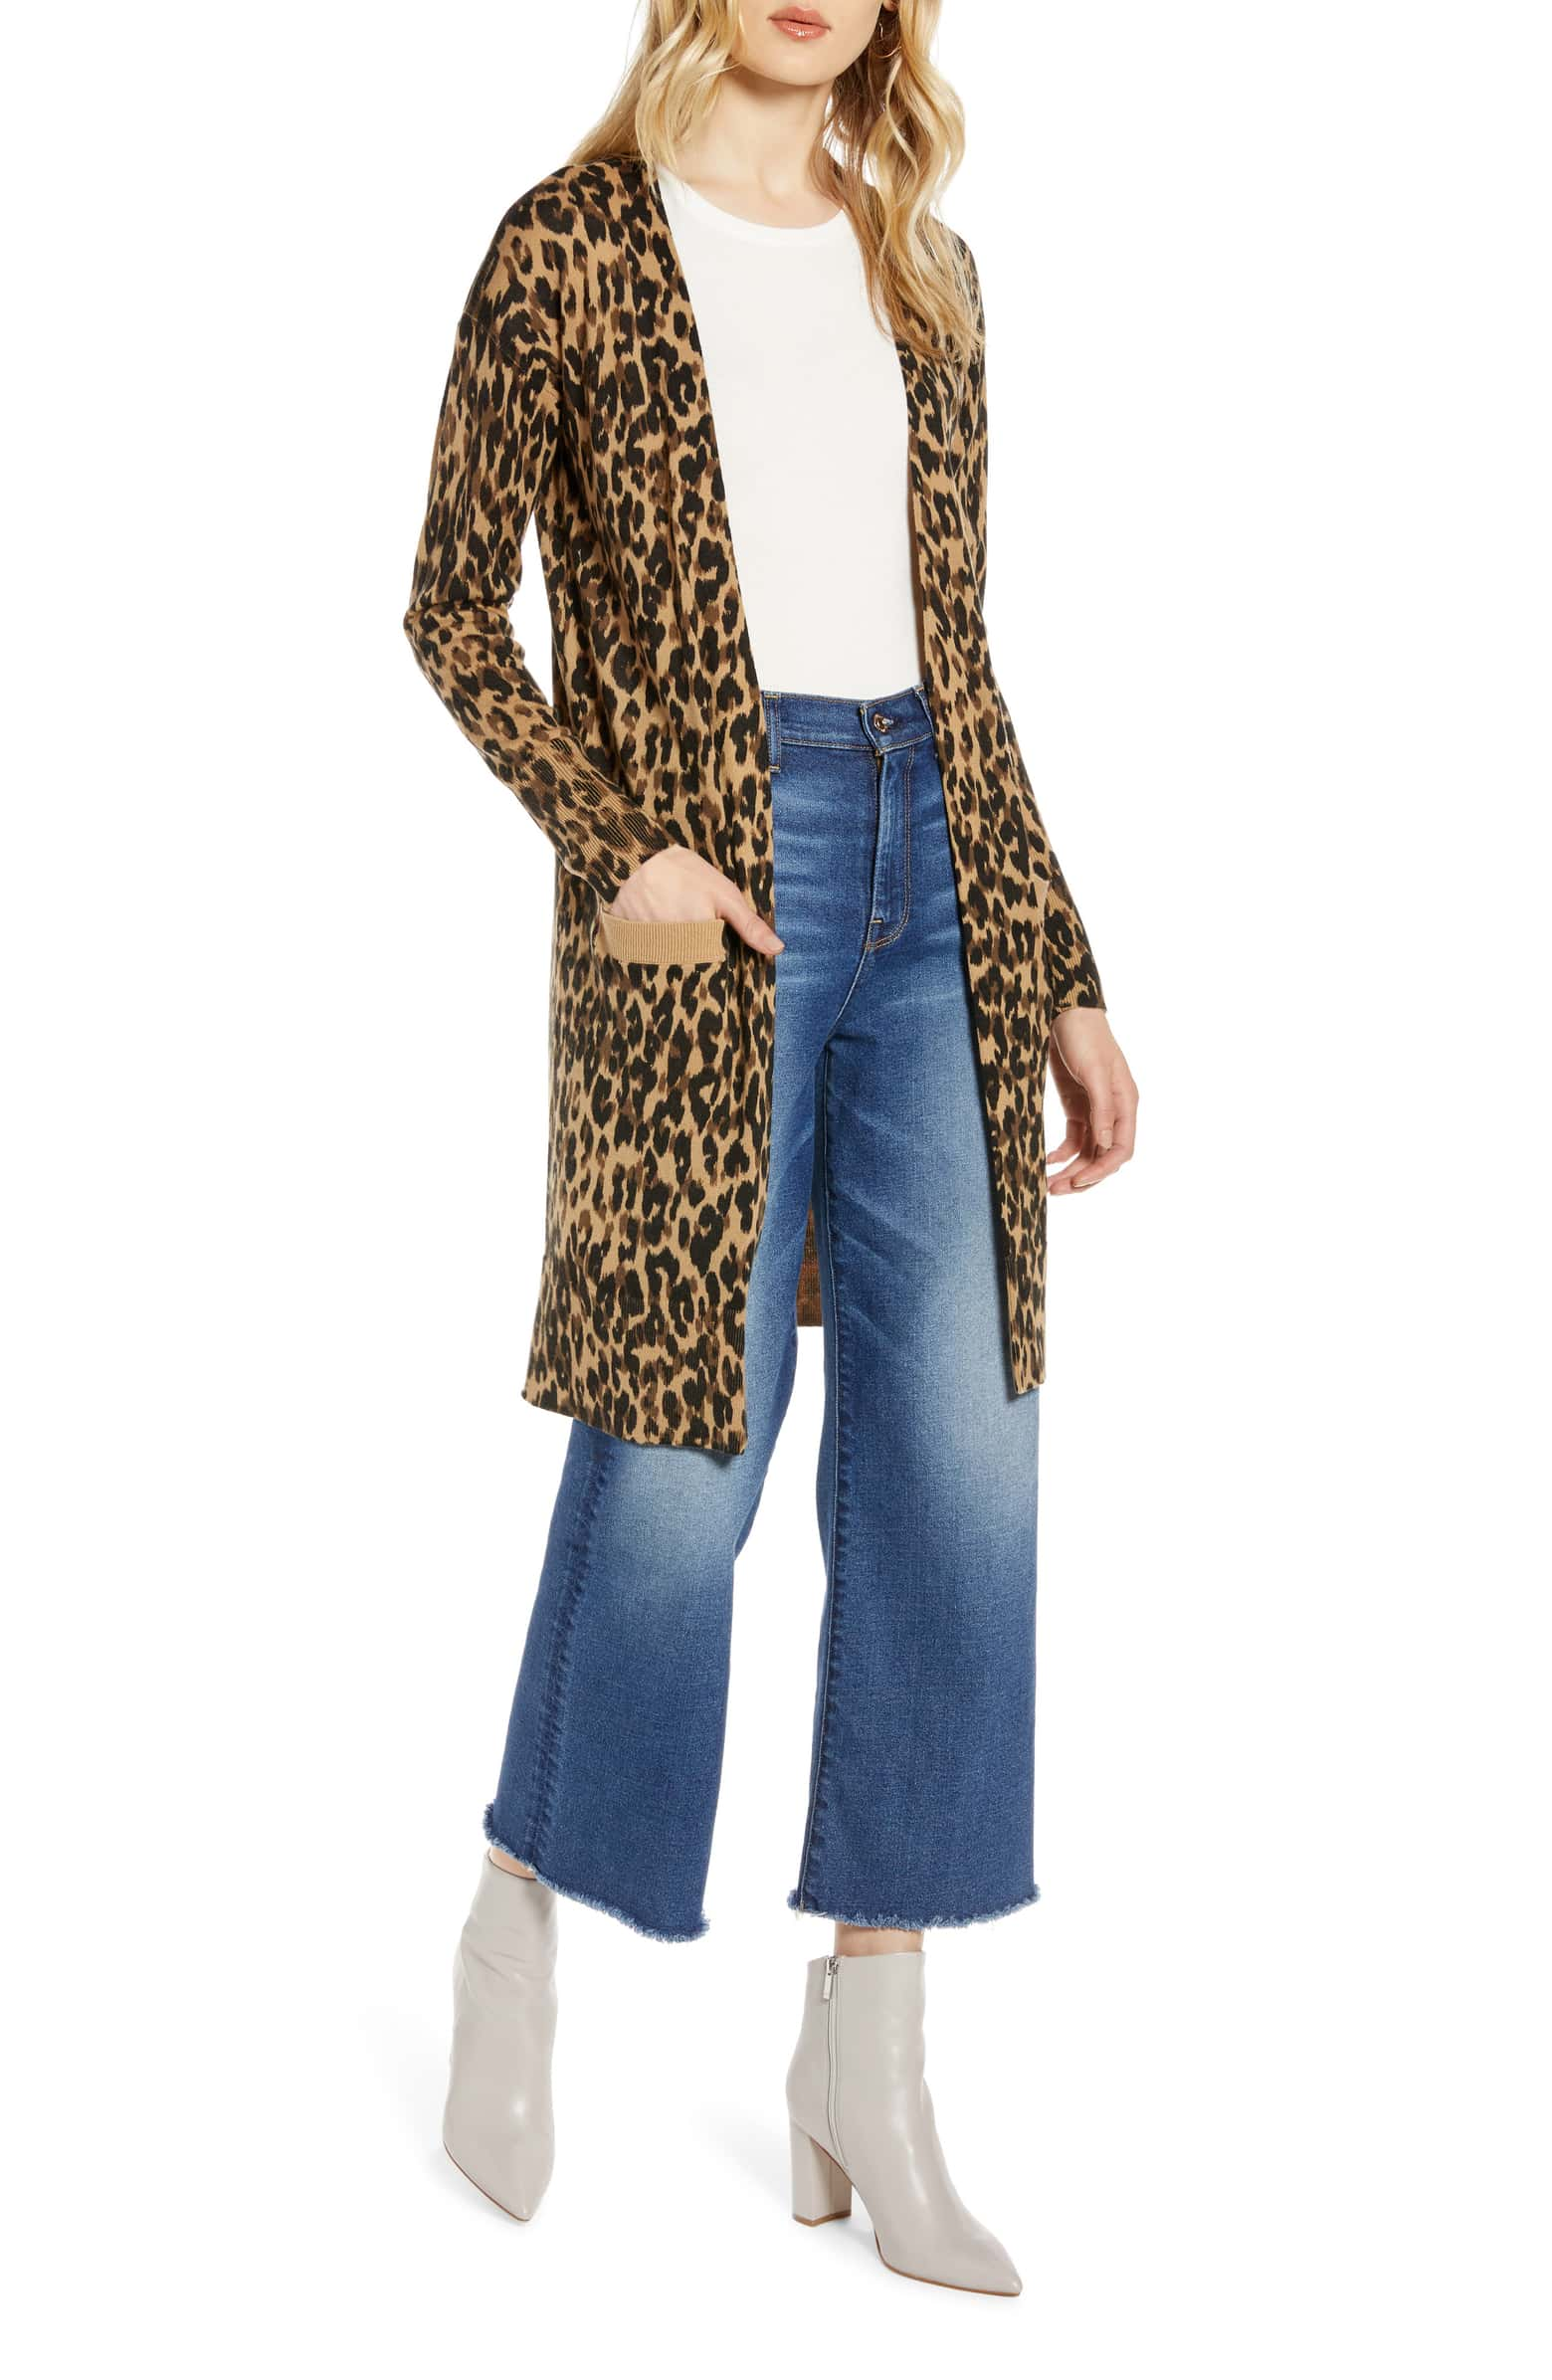 Nordstrom Anniversary Sale - #NSALE - Nordstrom Sale - Fall Fashion - Women's Fashion - Sabby Style-6